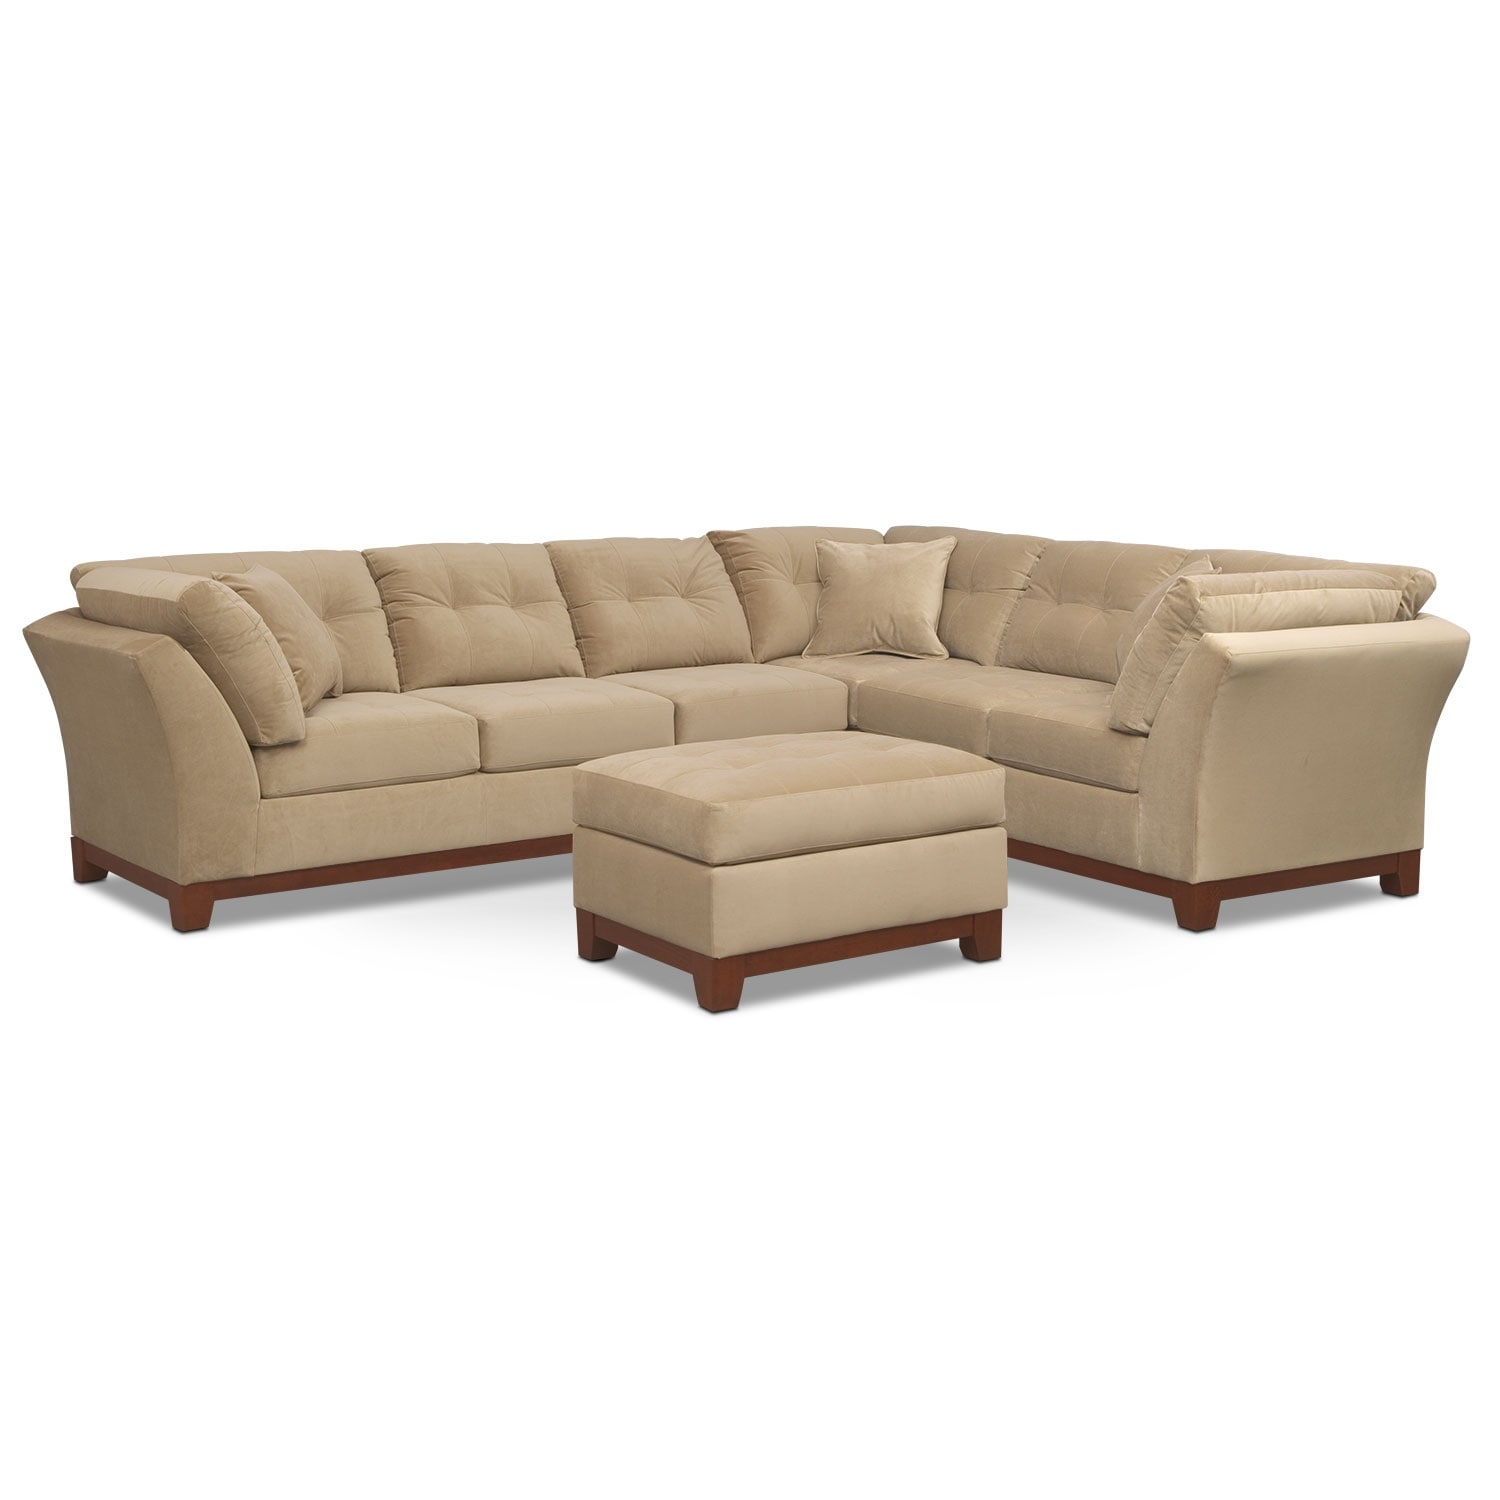 Living Room Furniture - Solace Cocoa II 2 Pc. Sectional (Reverse) and Ottoman